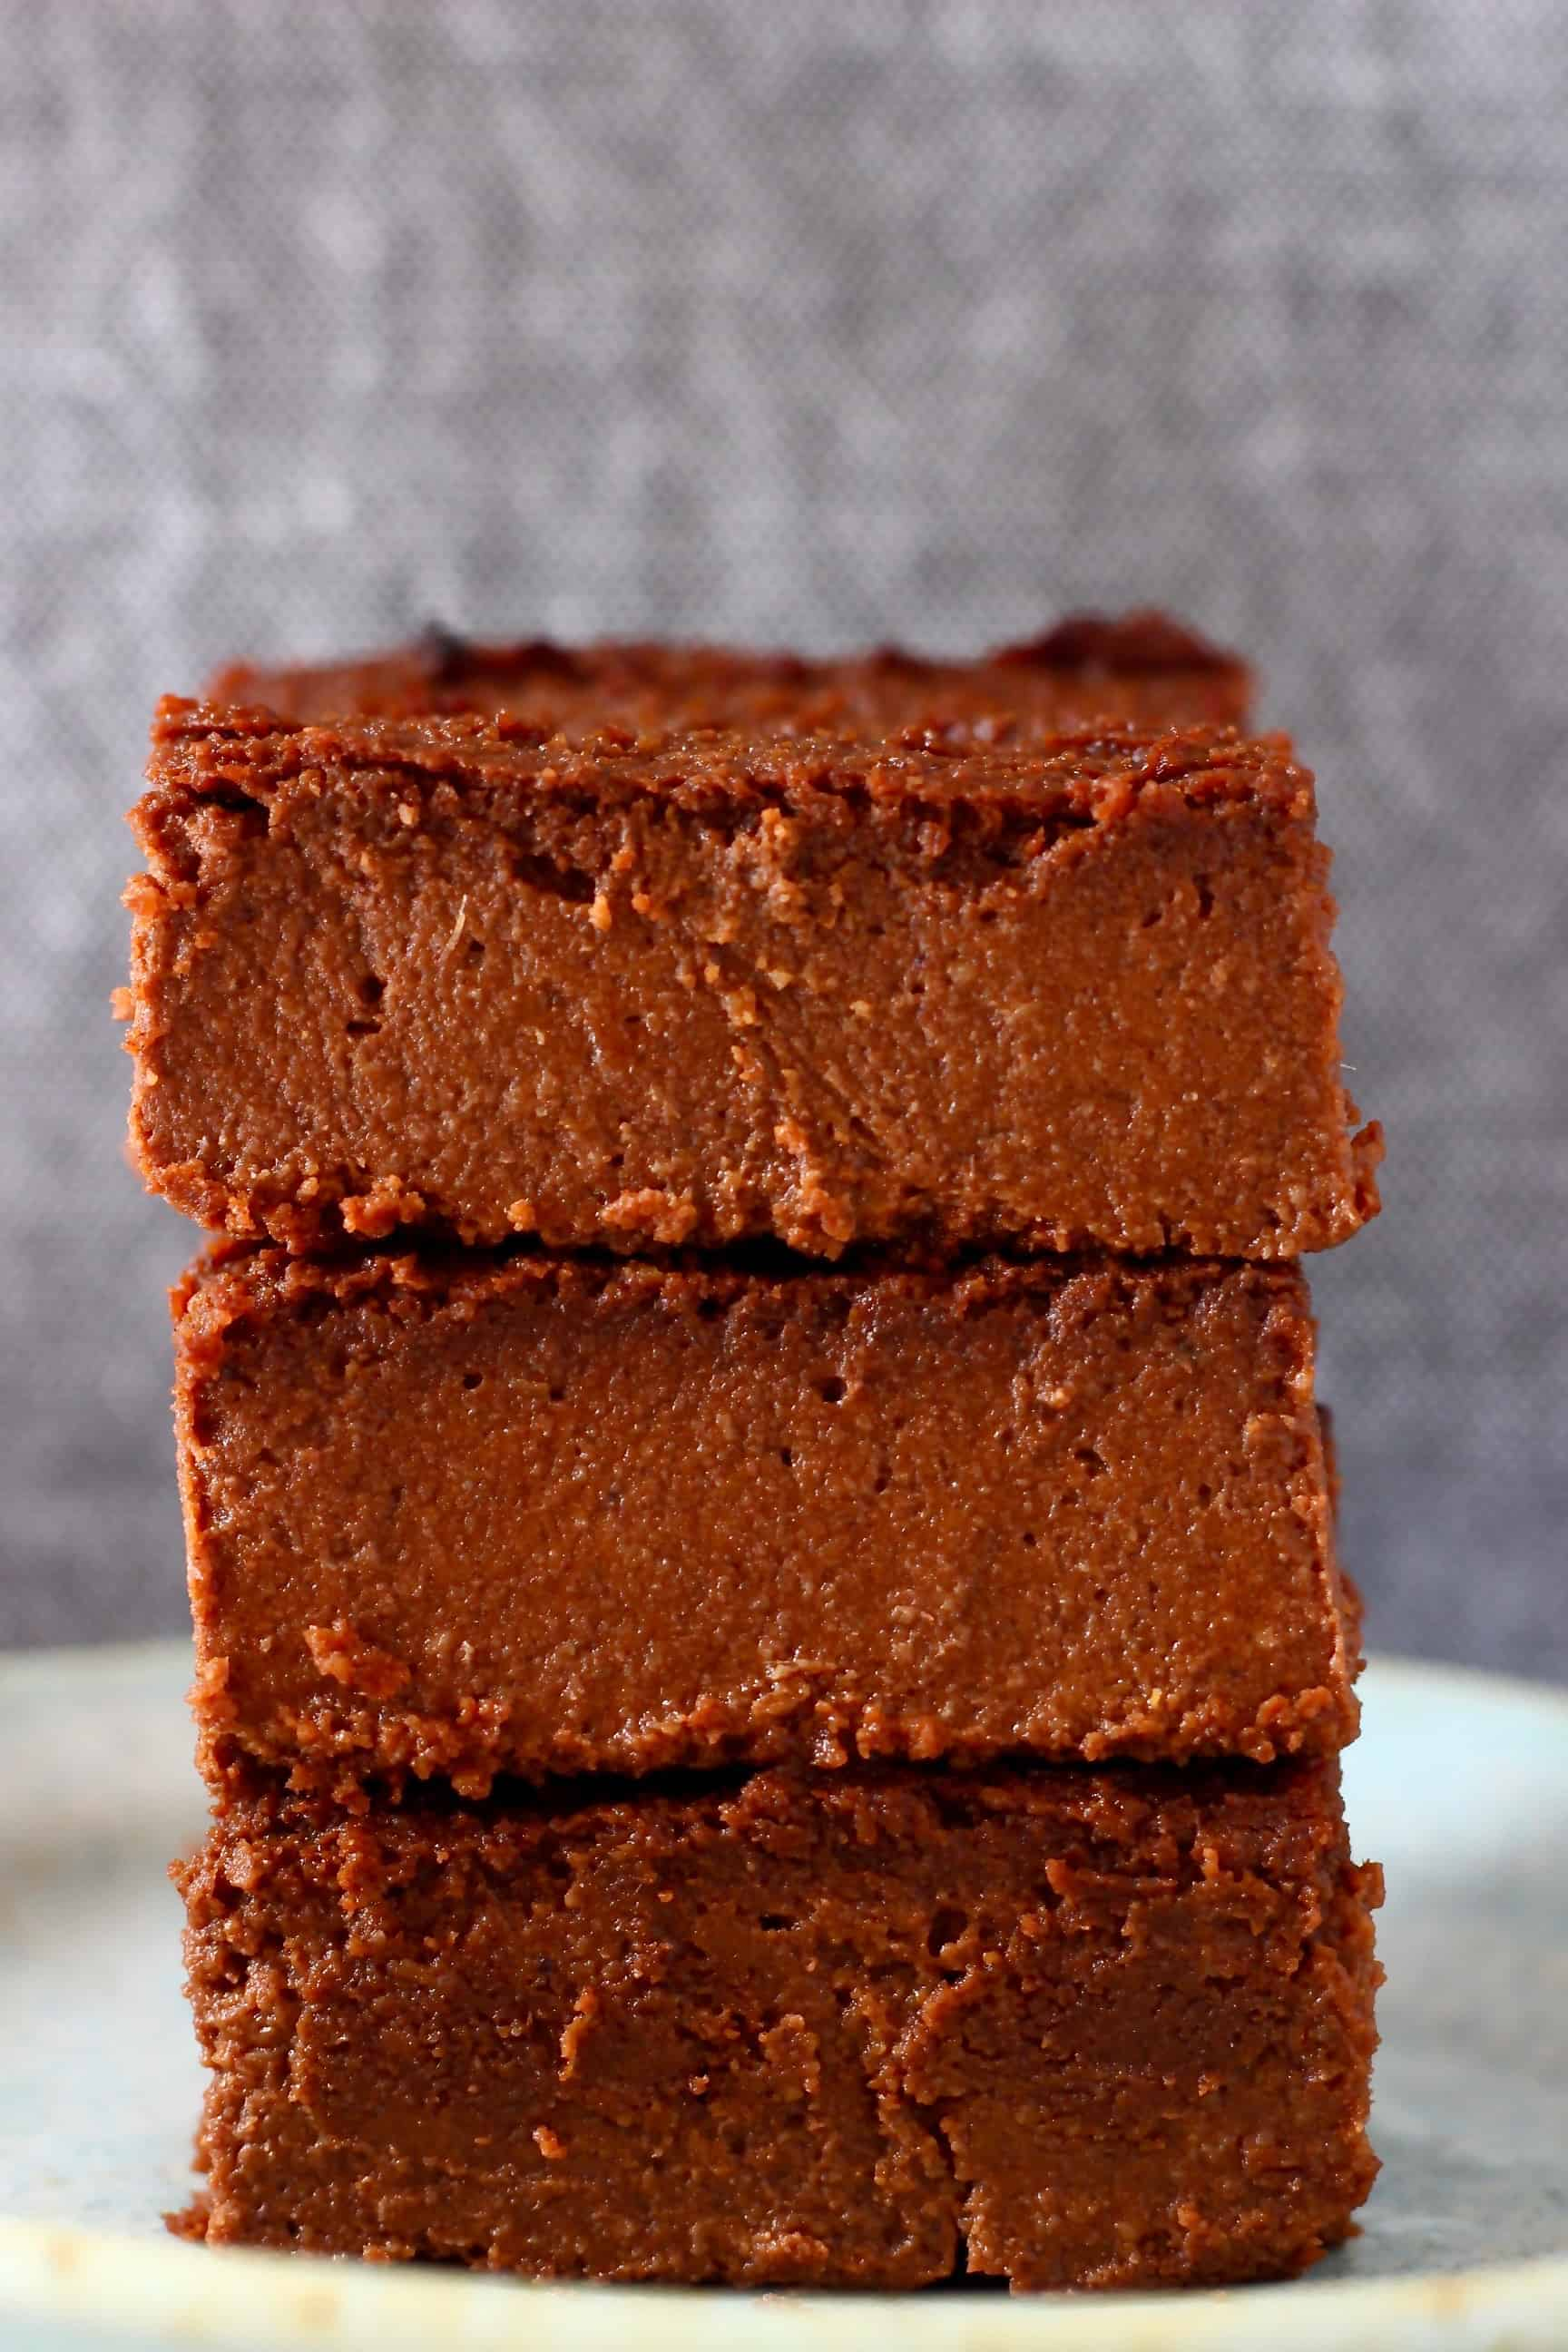 Three sweet potato brownies stacked on top of each other on a plate